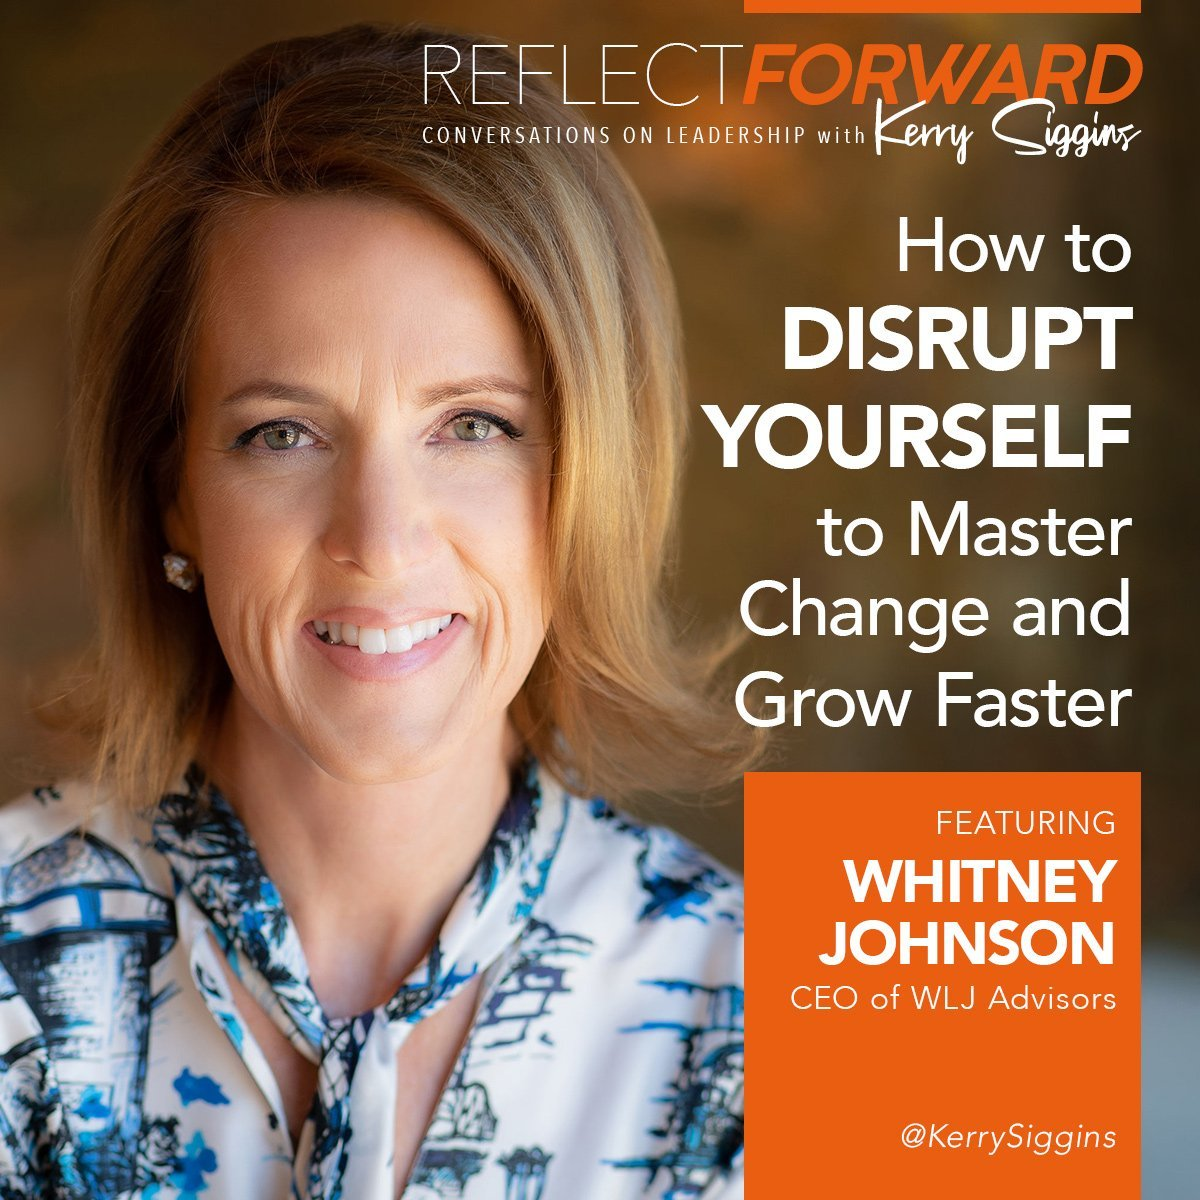 Disrupt Yourself Reflect Forward Podcast Kerry Siggins